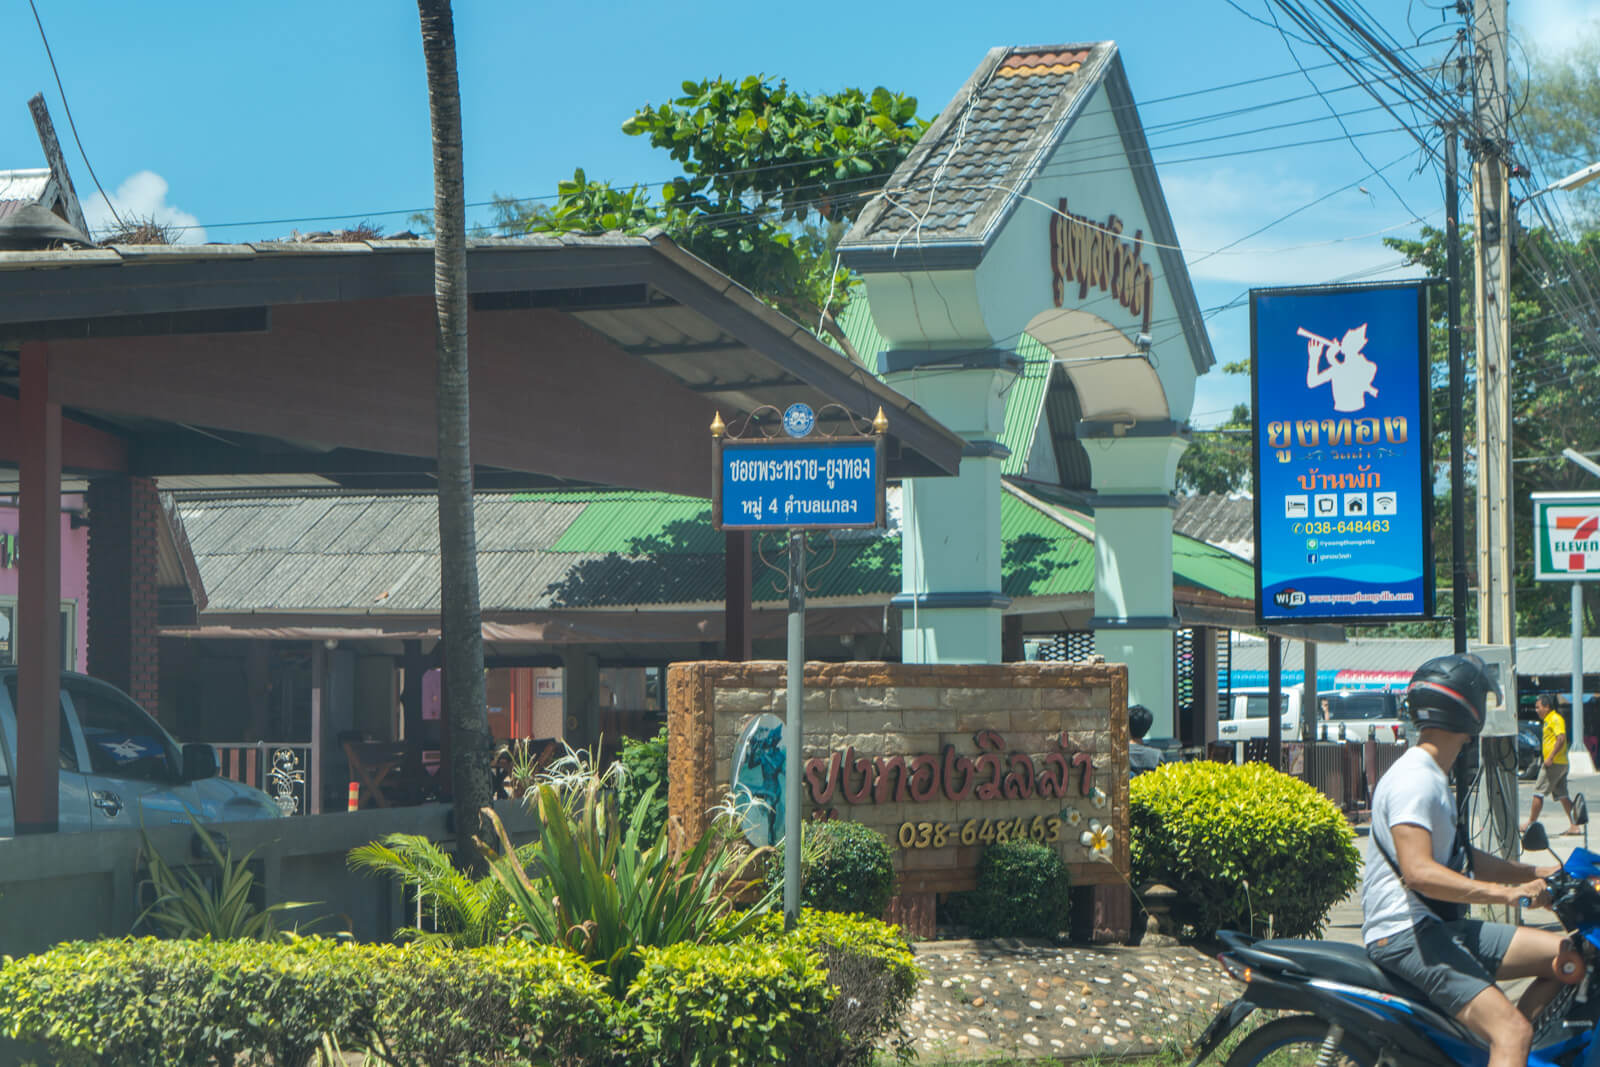 Rayong beach house for rent or sale in Thailand